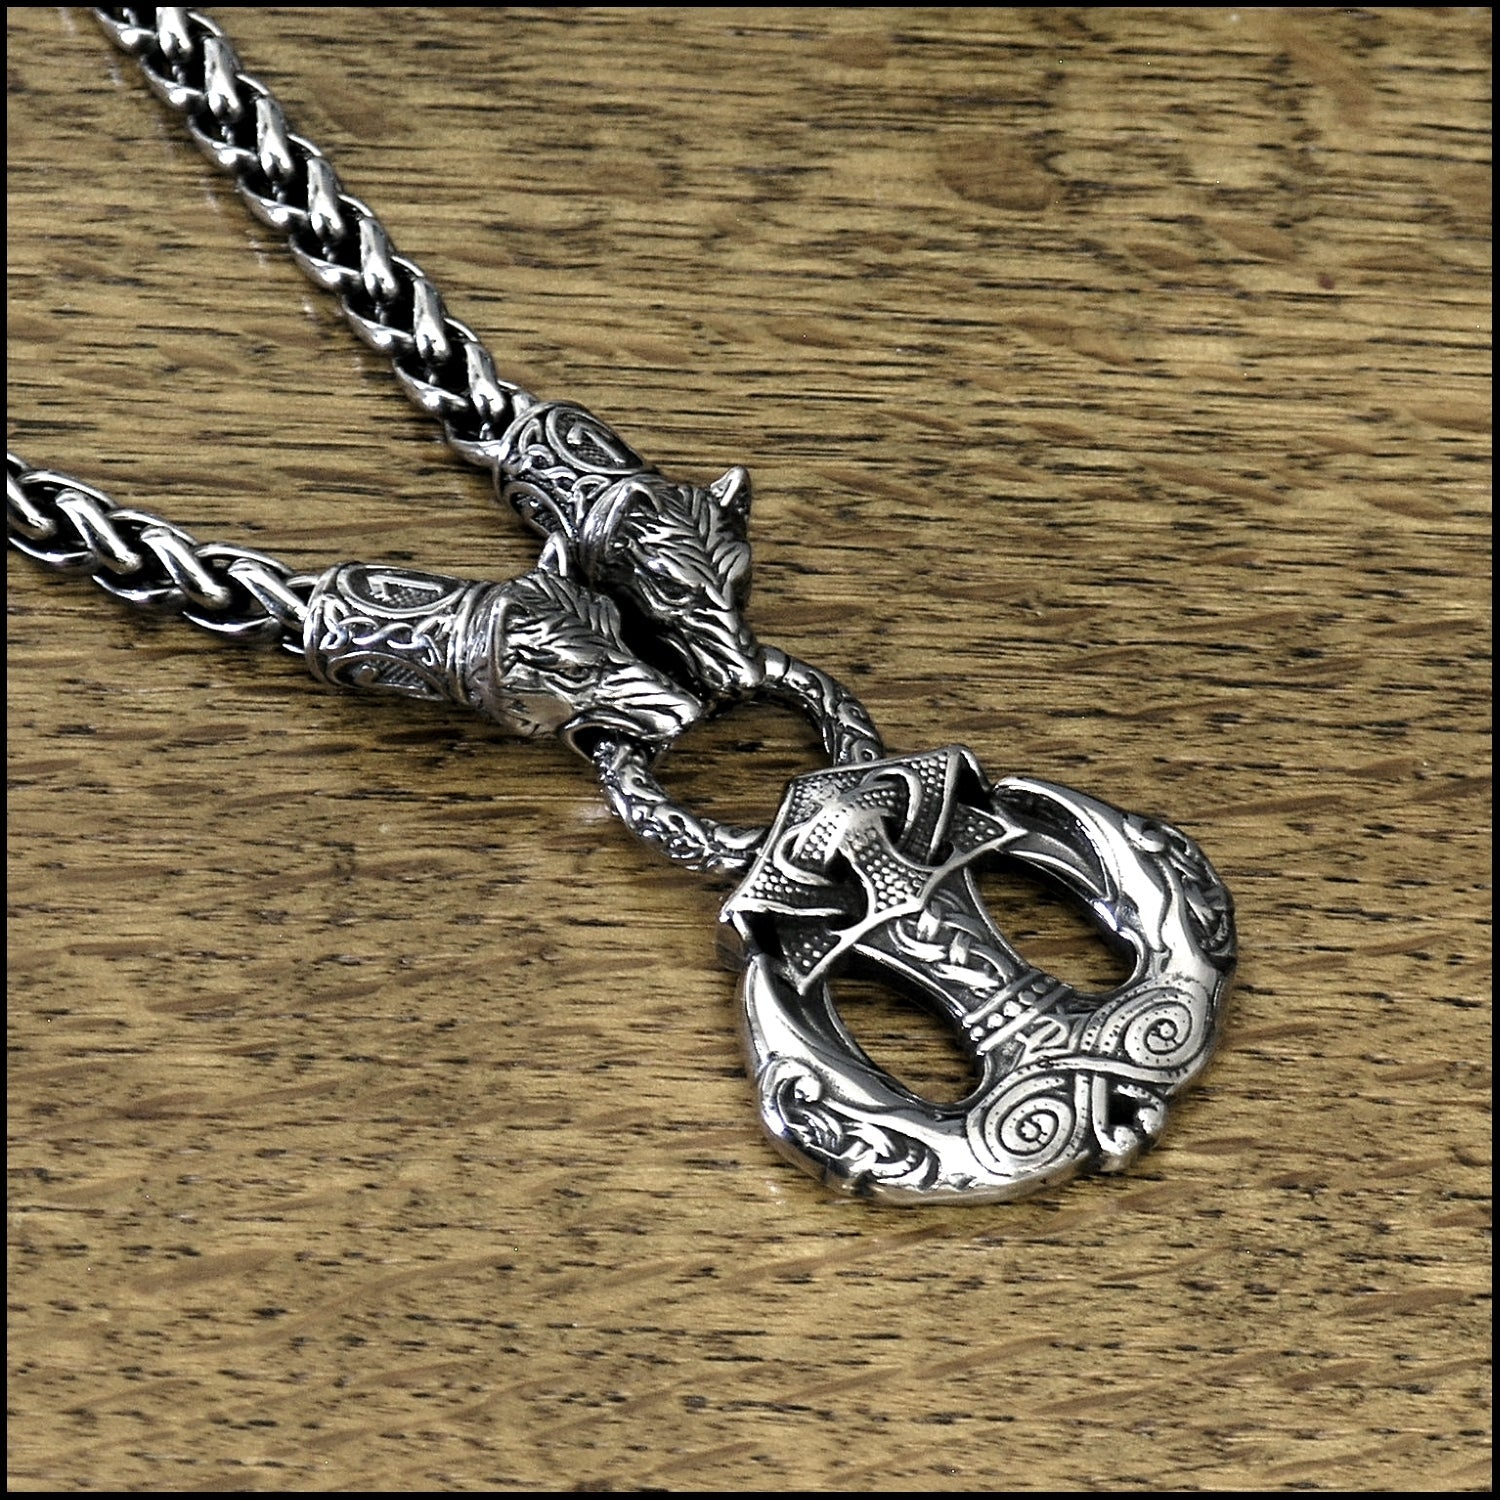 Wolf Warrior Necklace Featuring Antique Viking Braid Chain with Odin's Ravens Pendant